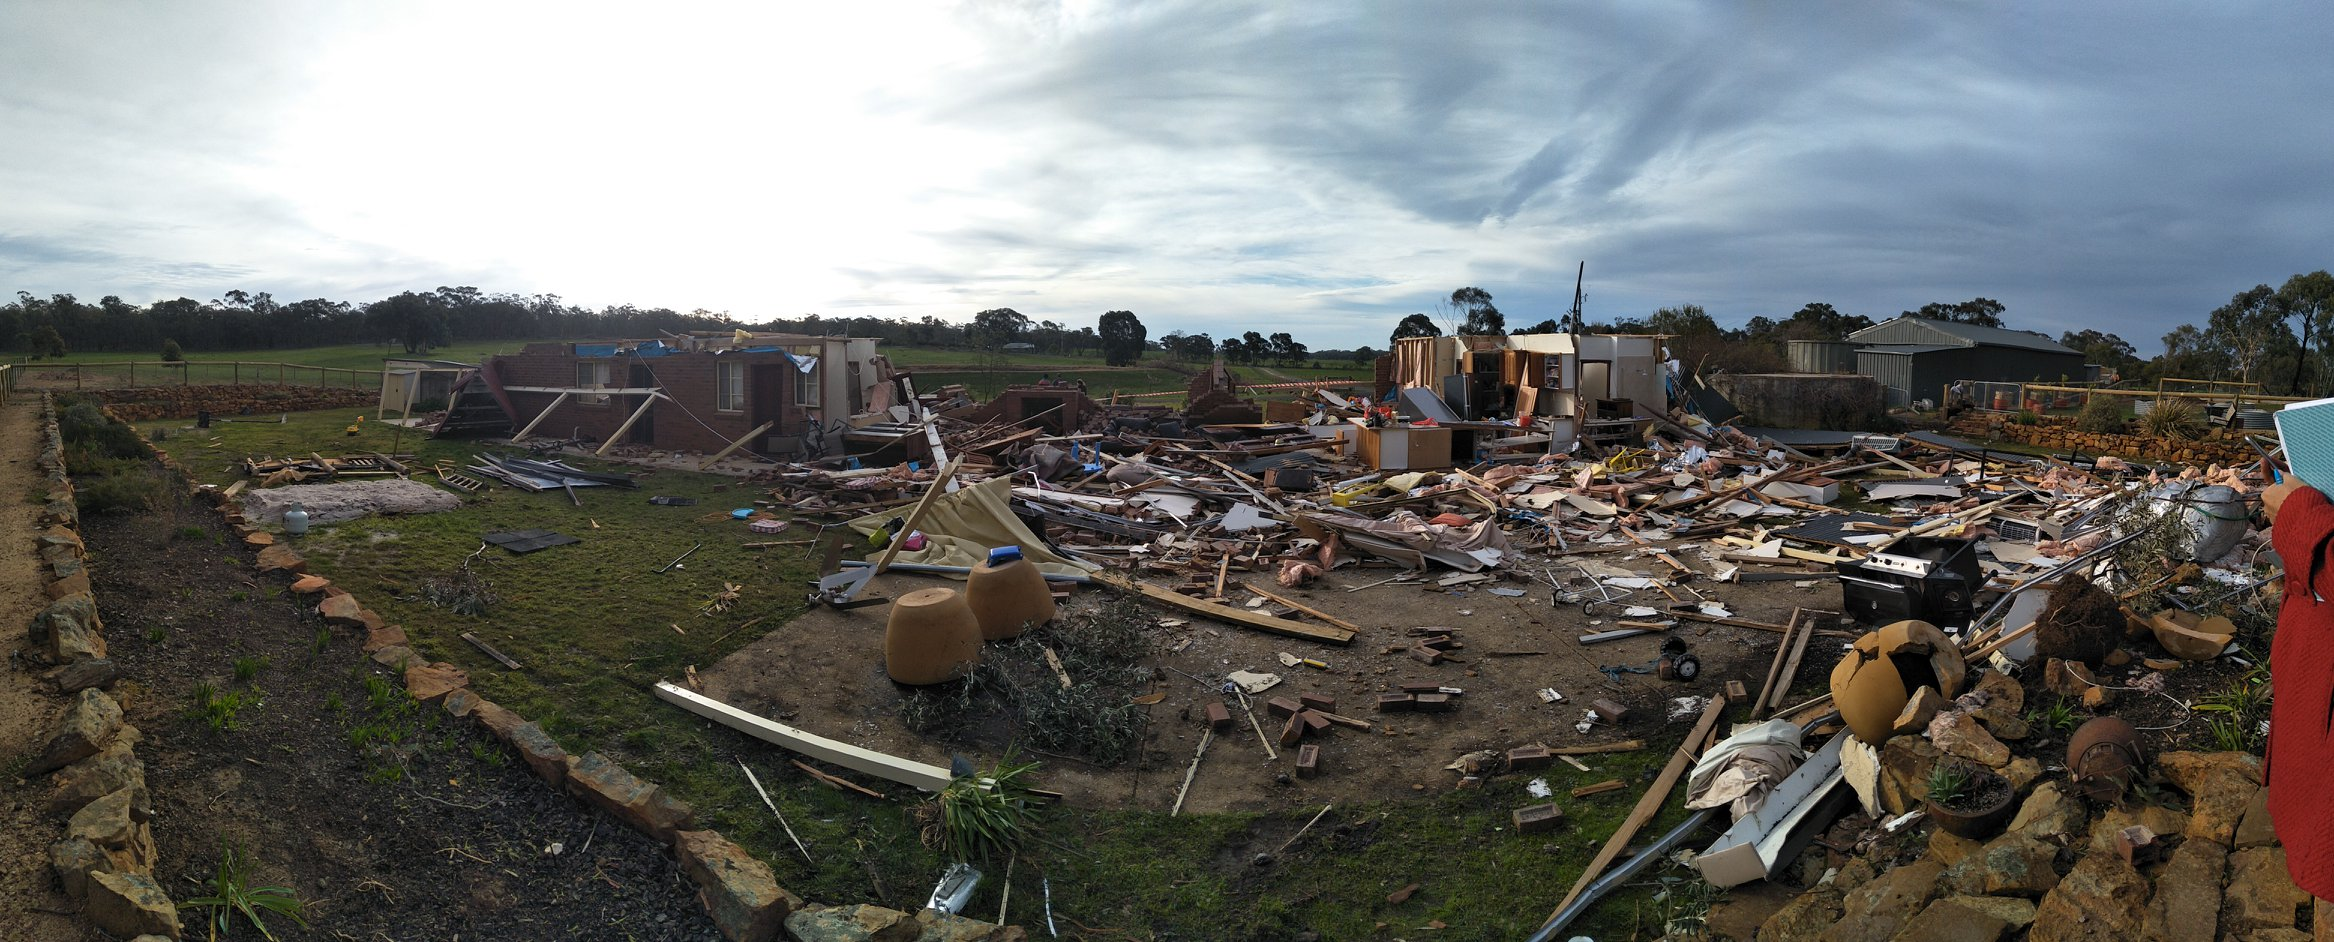 photo: Bureau of Meteorology;desc: Damage from tornado in Axe Creek near Bendigo, Vic, 29 June 2019;